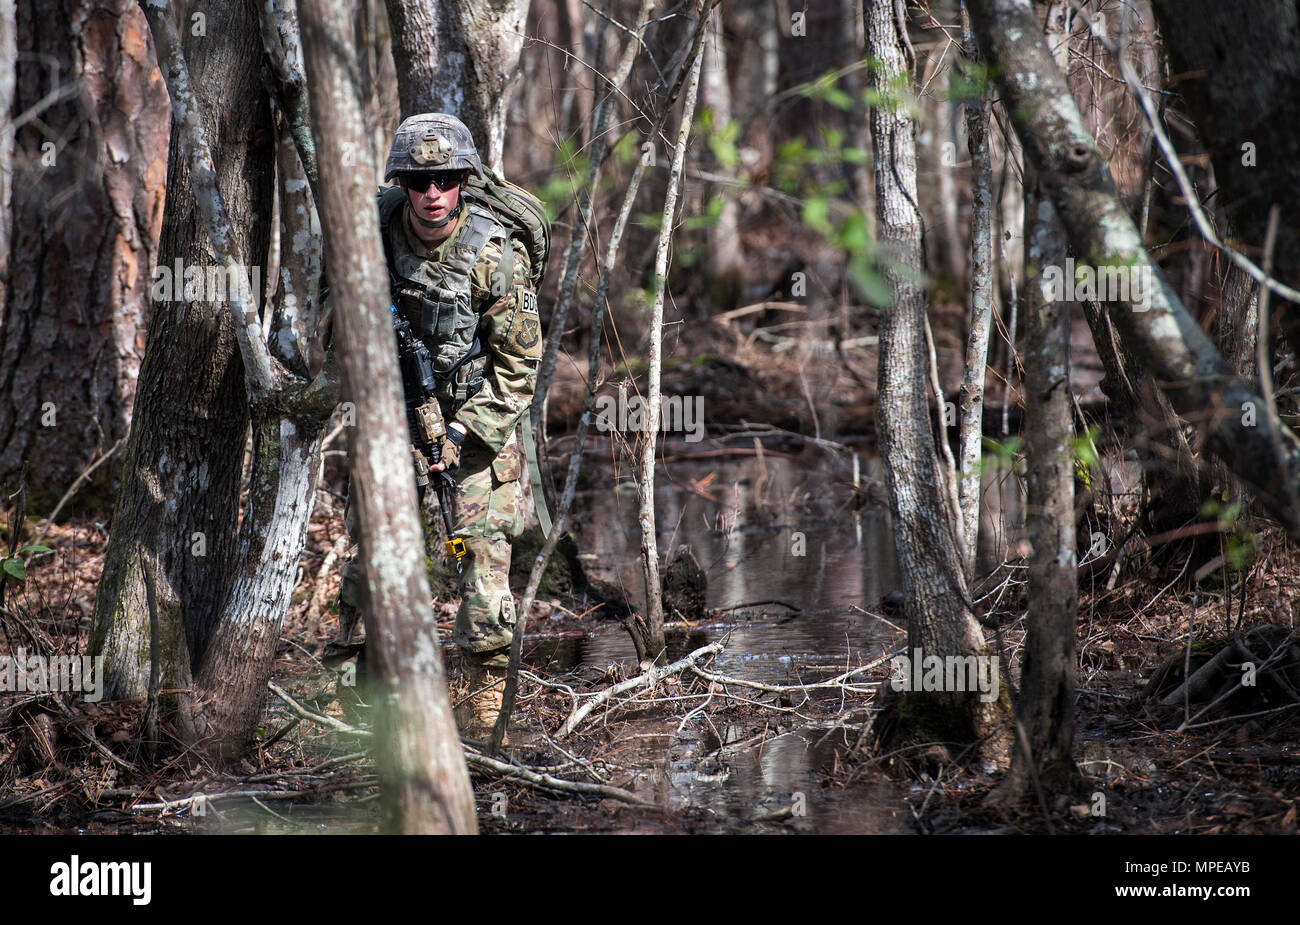 Airman 1st Class Daniel Ross, 822d Base Defense Squadron fireteam member, looks for signs of improvised explosive devices, while simulating patrolling an area outside the wire Feb. 7, 2017, at Moody Air Force Base, Ga. Airmen simulated various missions they would be tasked to complete during a deployment, including being ambushed while out on patrol, gathering intelligence from residents in the local village and raiding buildings. (U.S. Air Force photo by Airman 1st Class Janiqua P. Robinson) - Stock Image